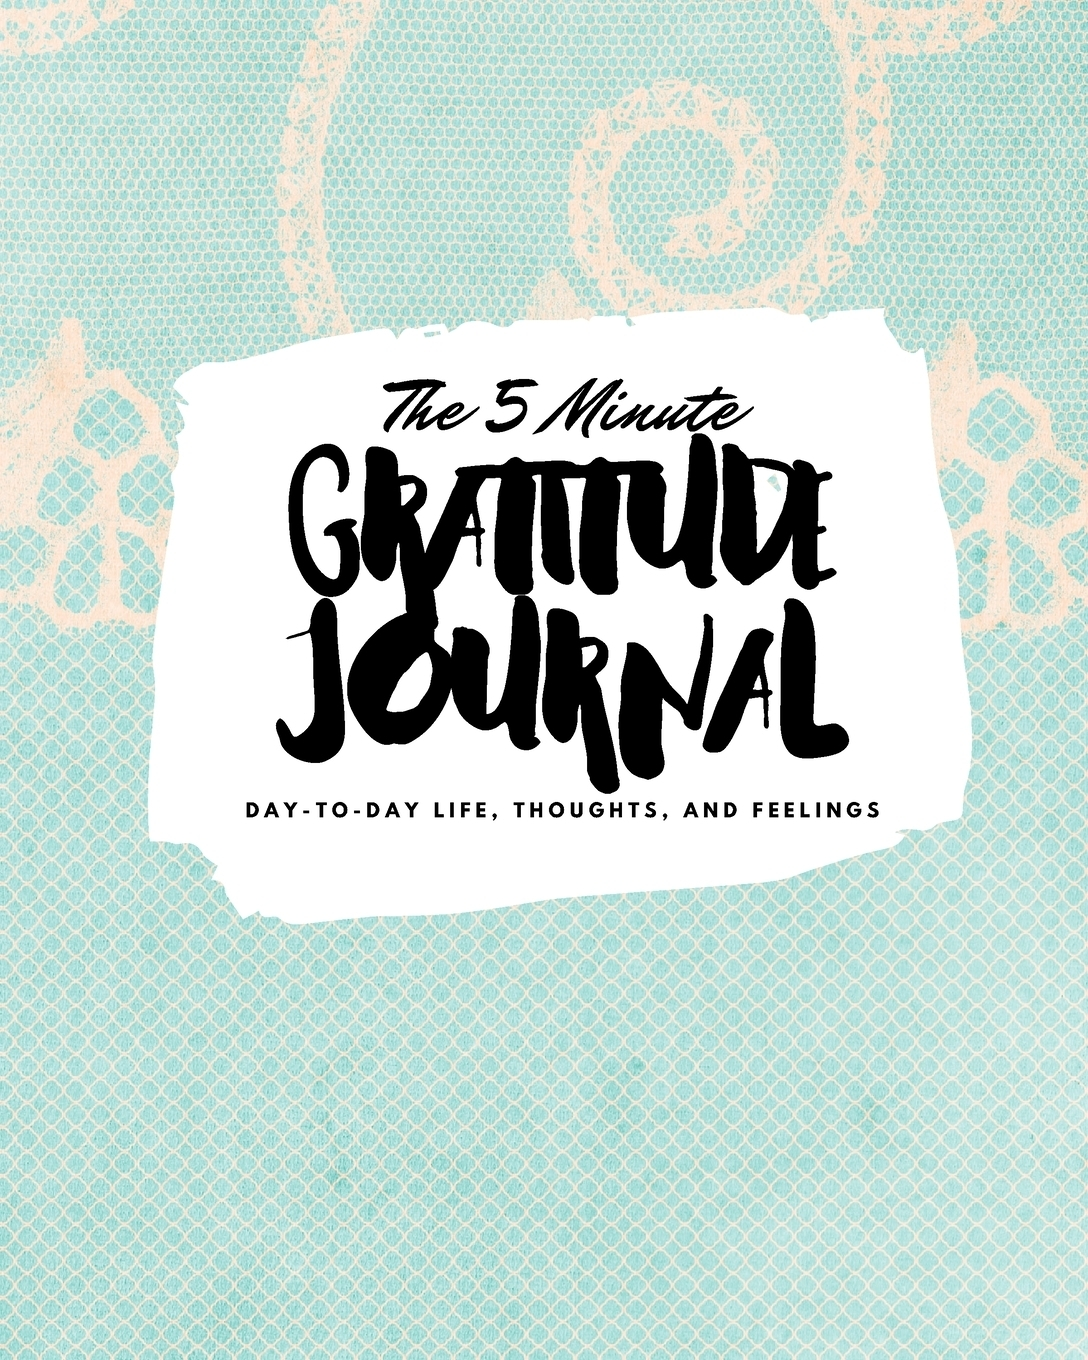 Sheba Blake. The 5 Minute Gratitude Journal. Day-To-Day Life, Thoughts, and Feelings (8x10 Softcover Journal)